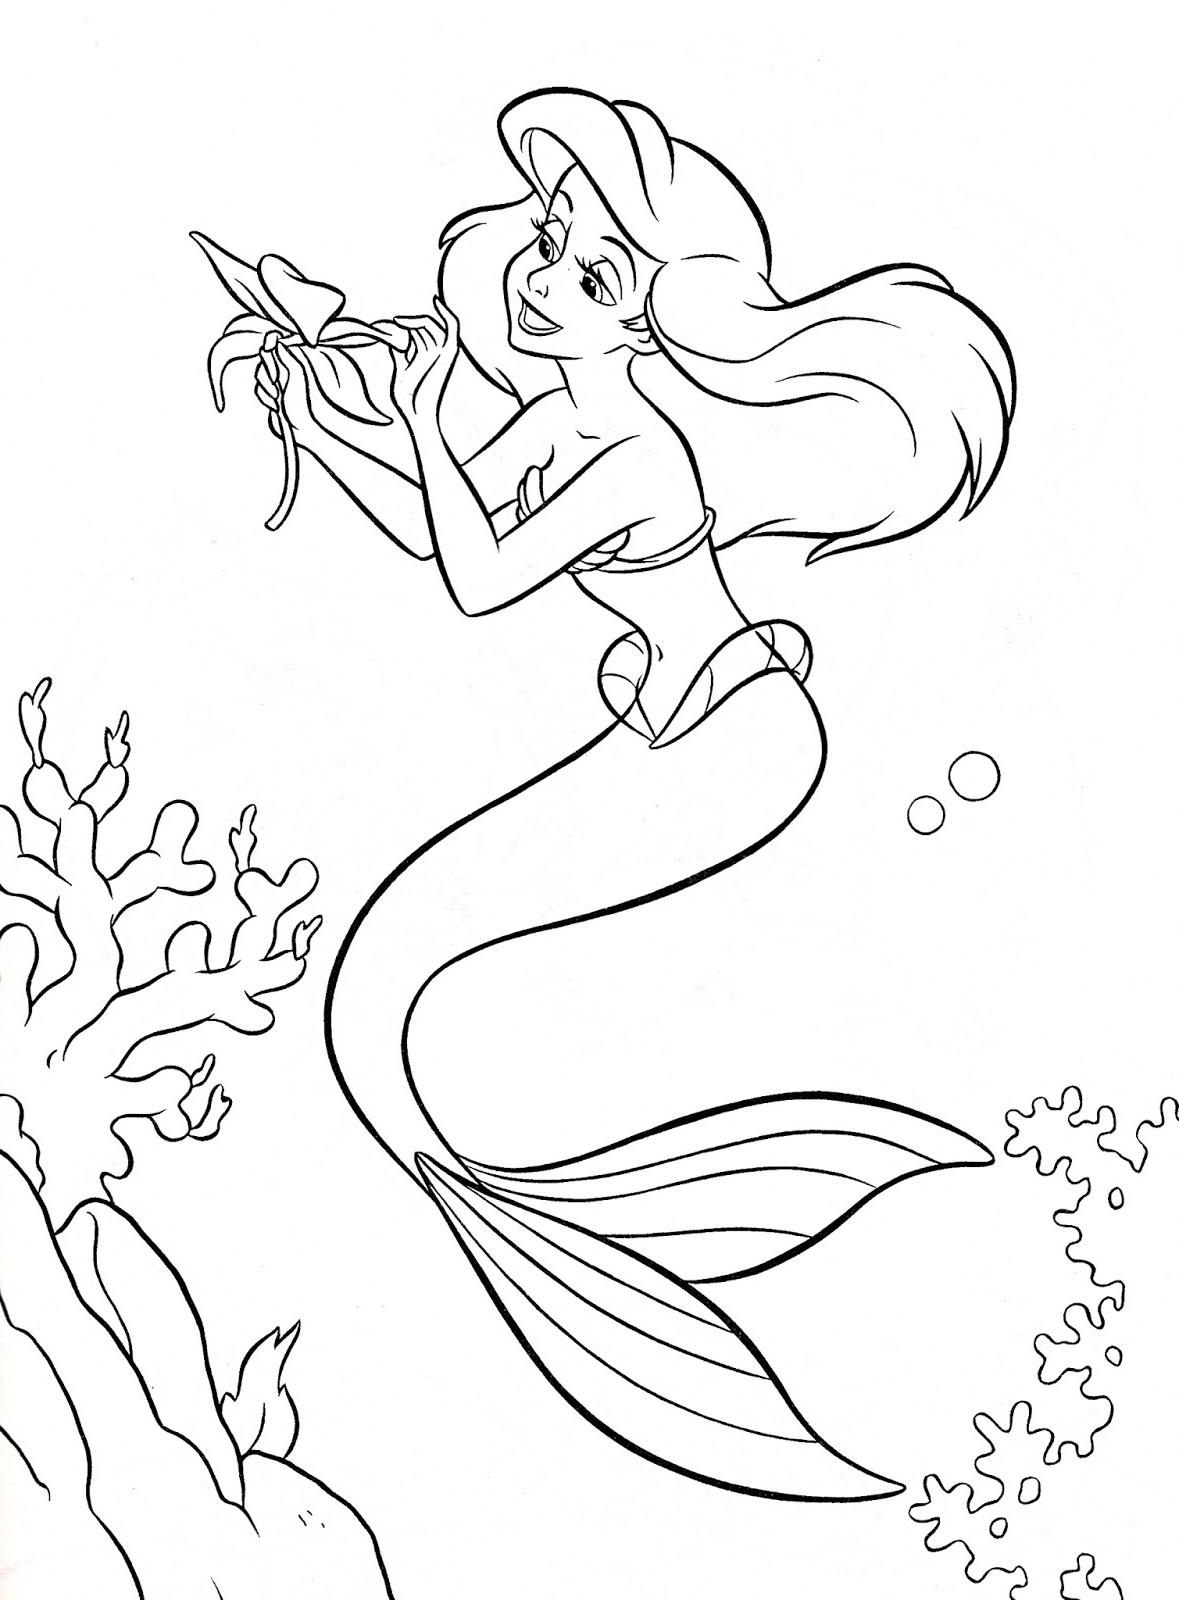 ariel mermaid coloring pages 5